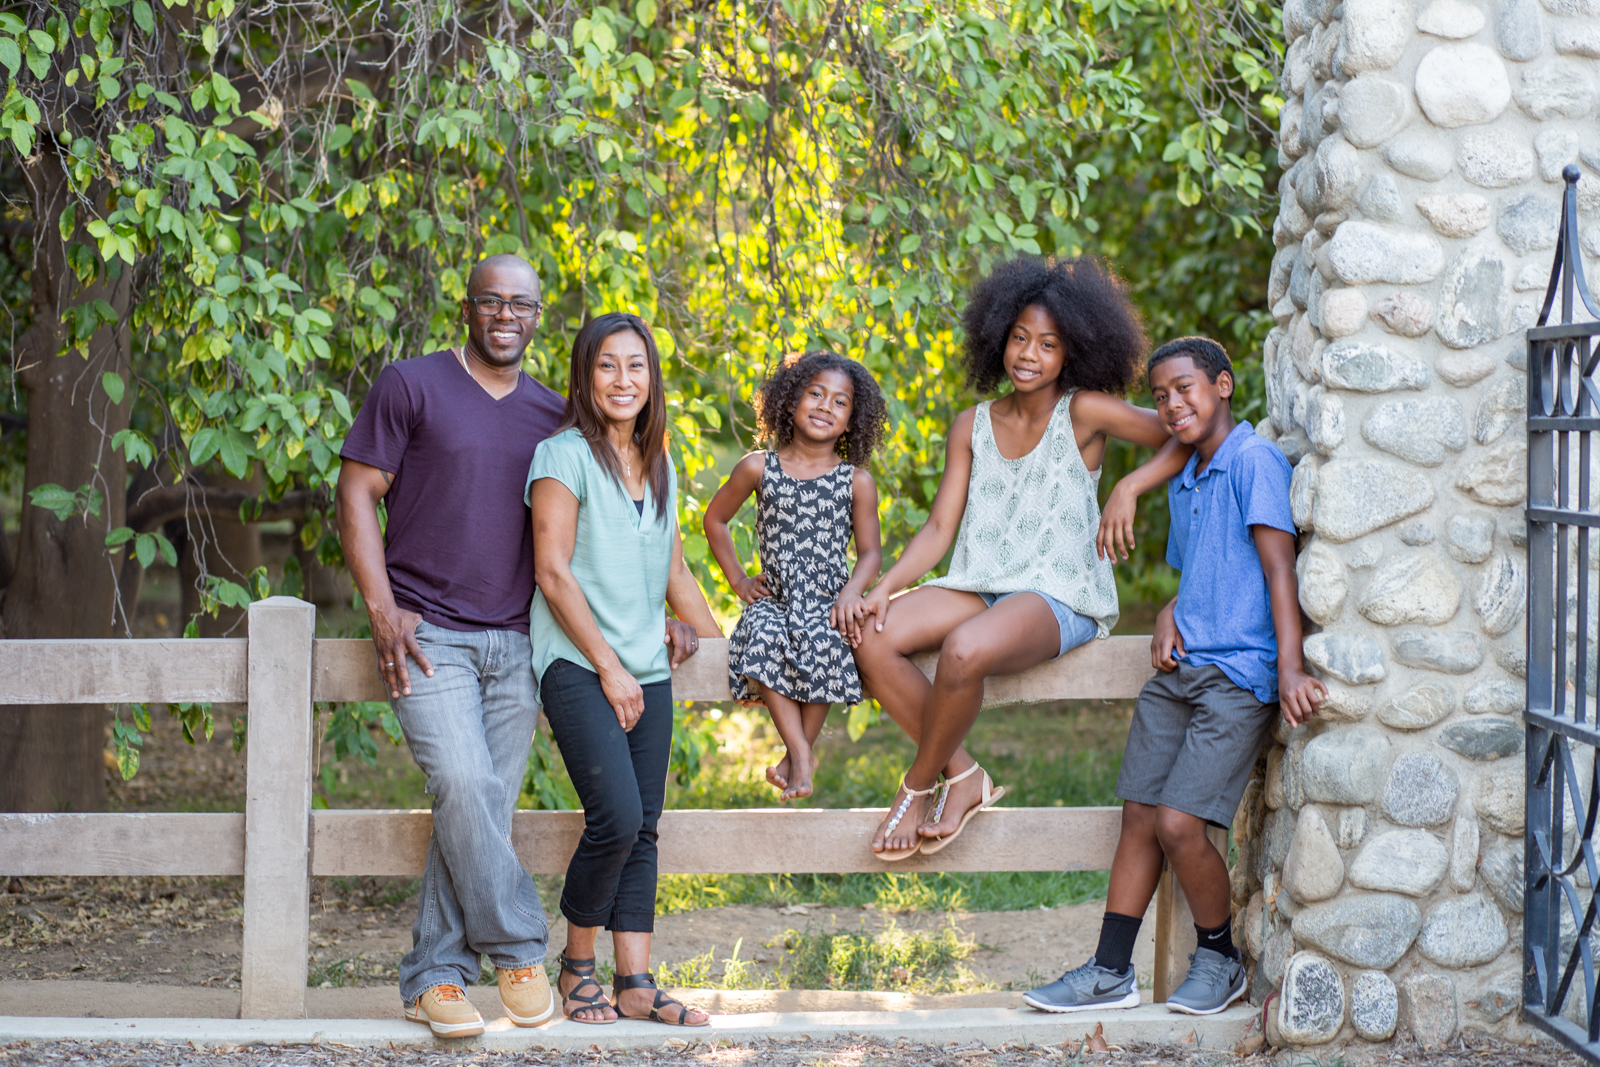 What to wear in your family portrait - Marcy Browe Photography